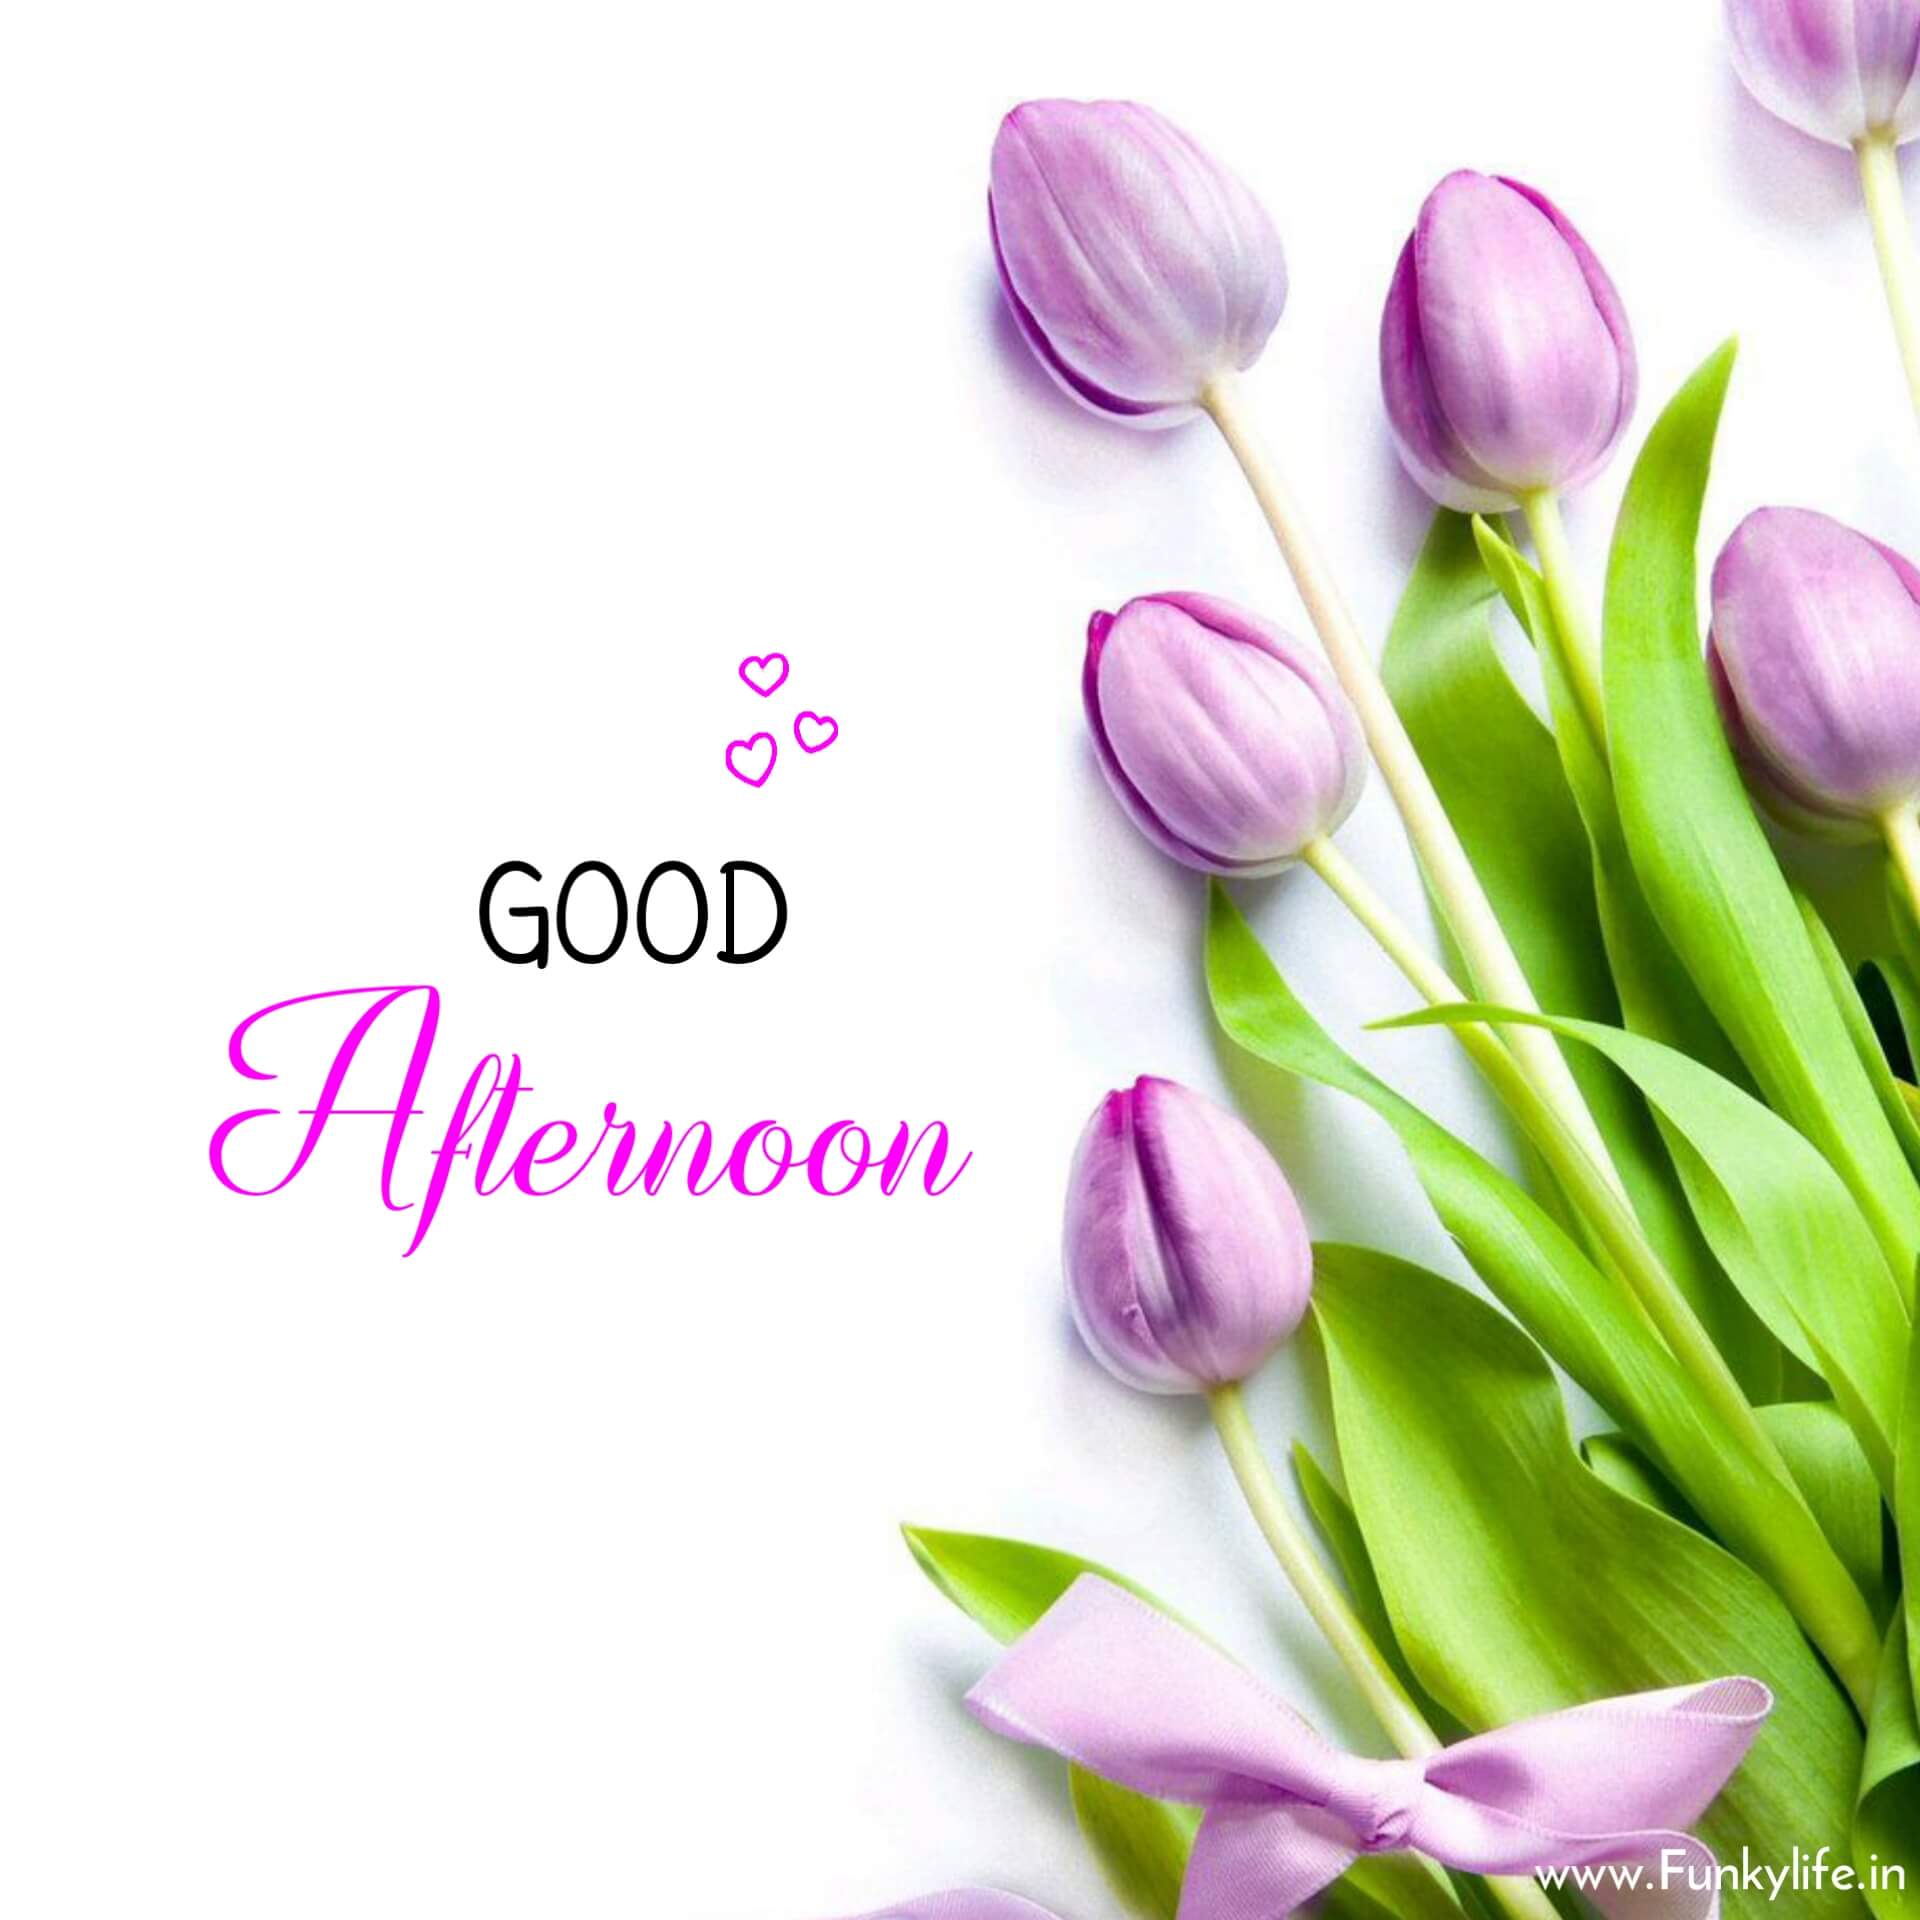 HD Good Afternoon Image